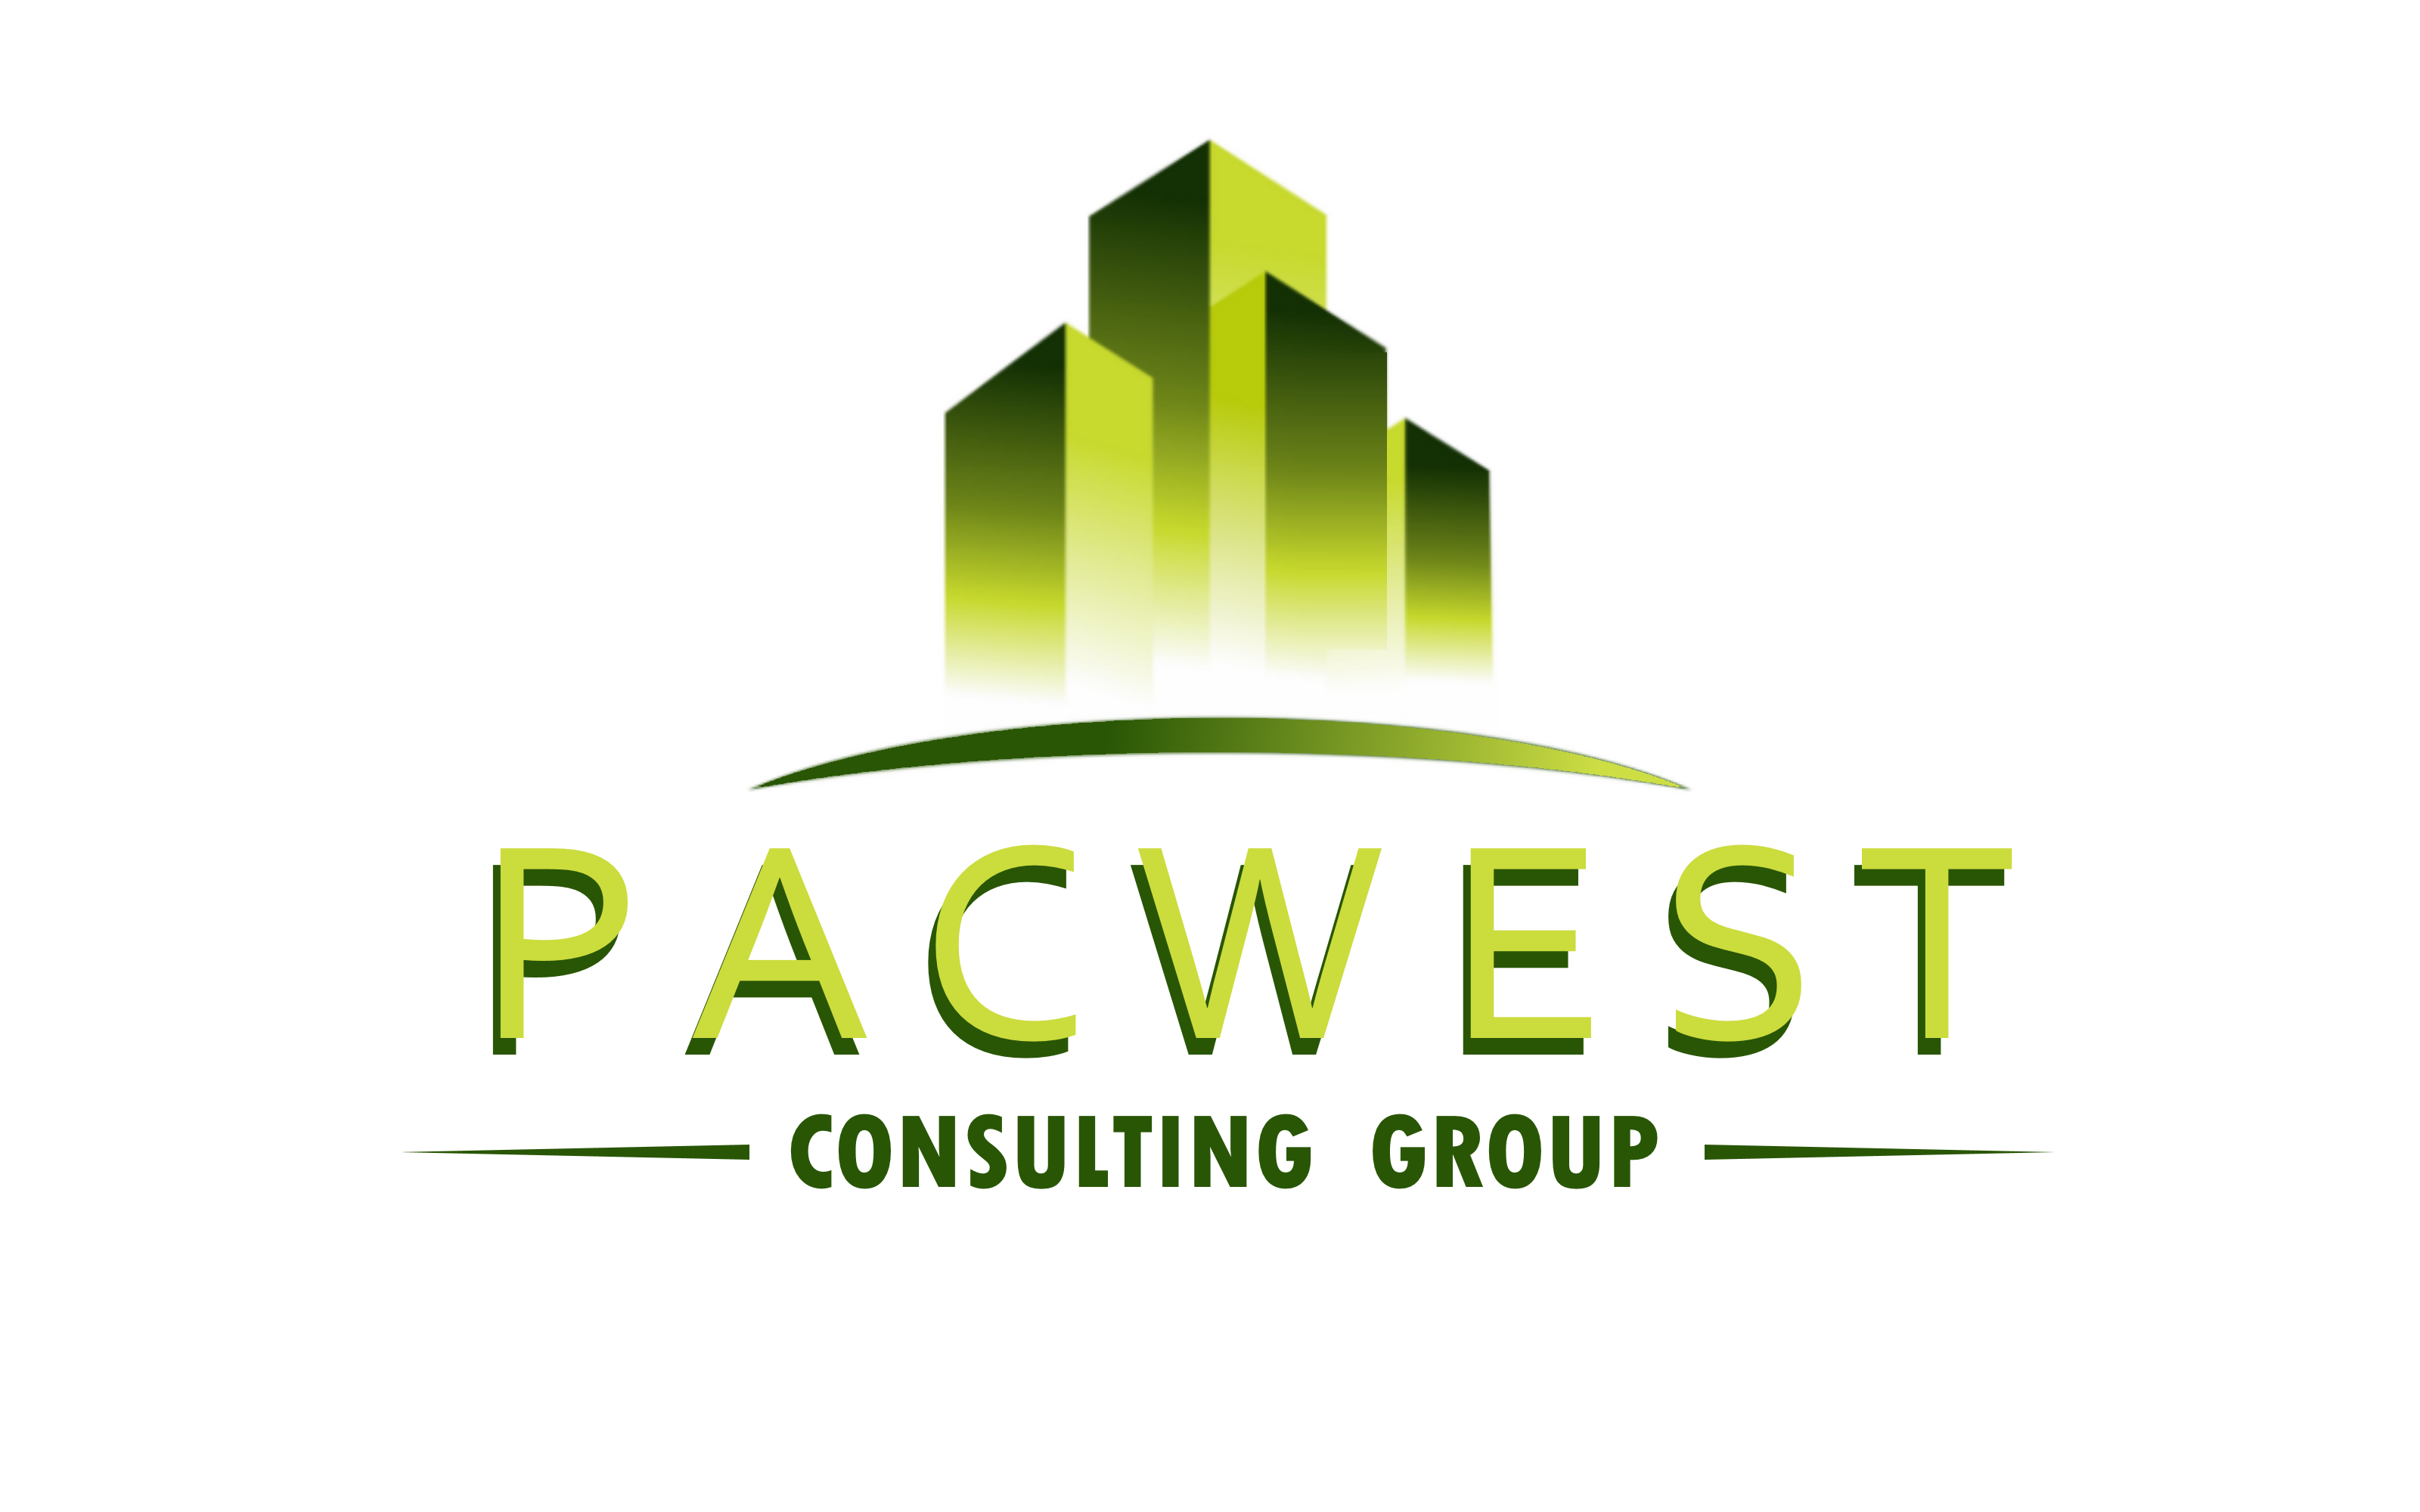 Logo Design by Roberto Bassi - Entry No. 82 in the Logo Design Contest Imaginative Logo Design for Pacwest Consulting Group.